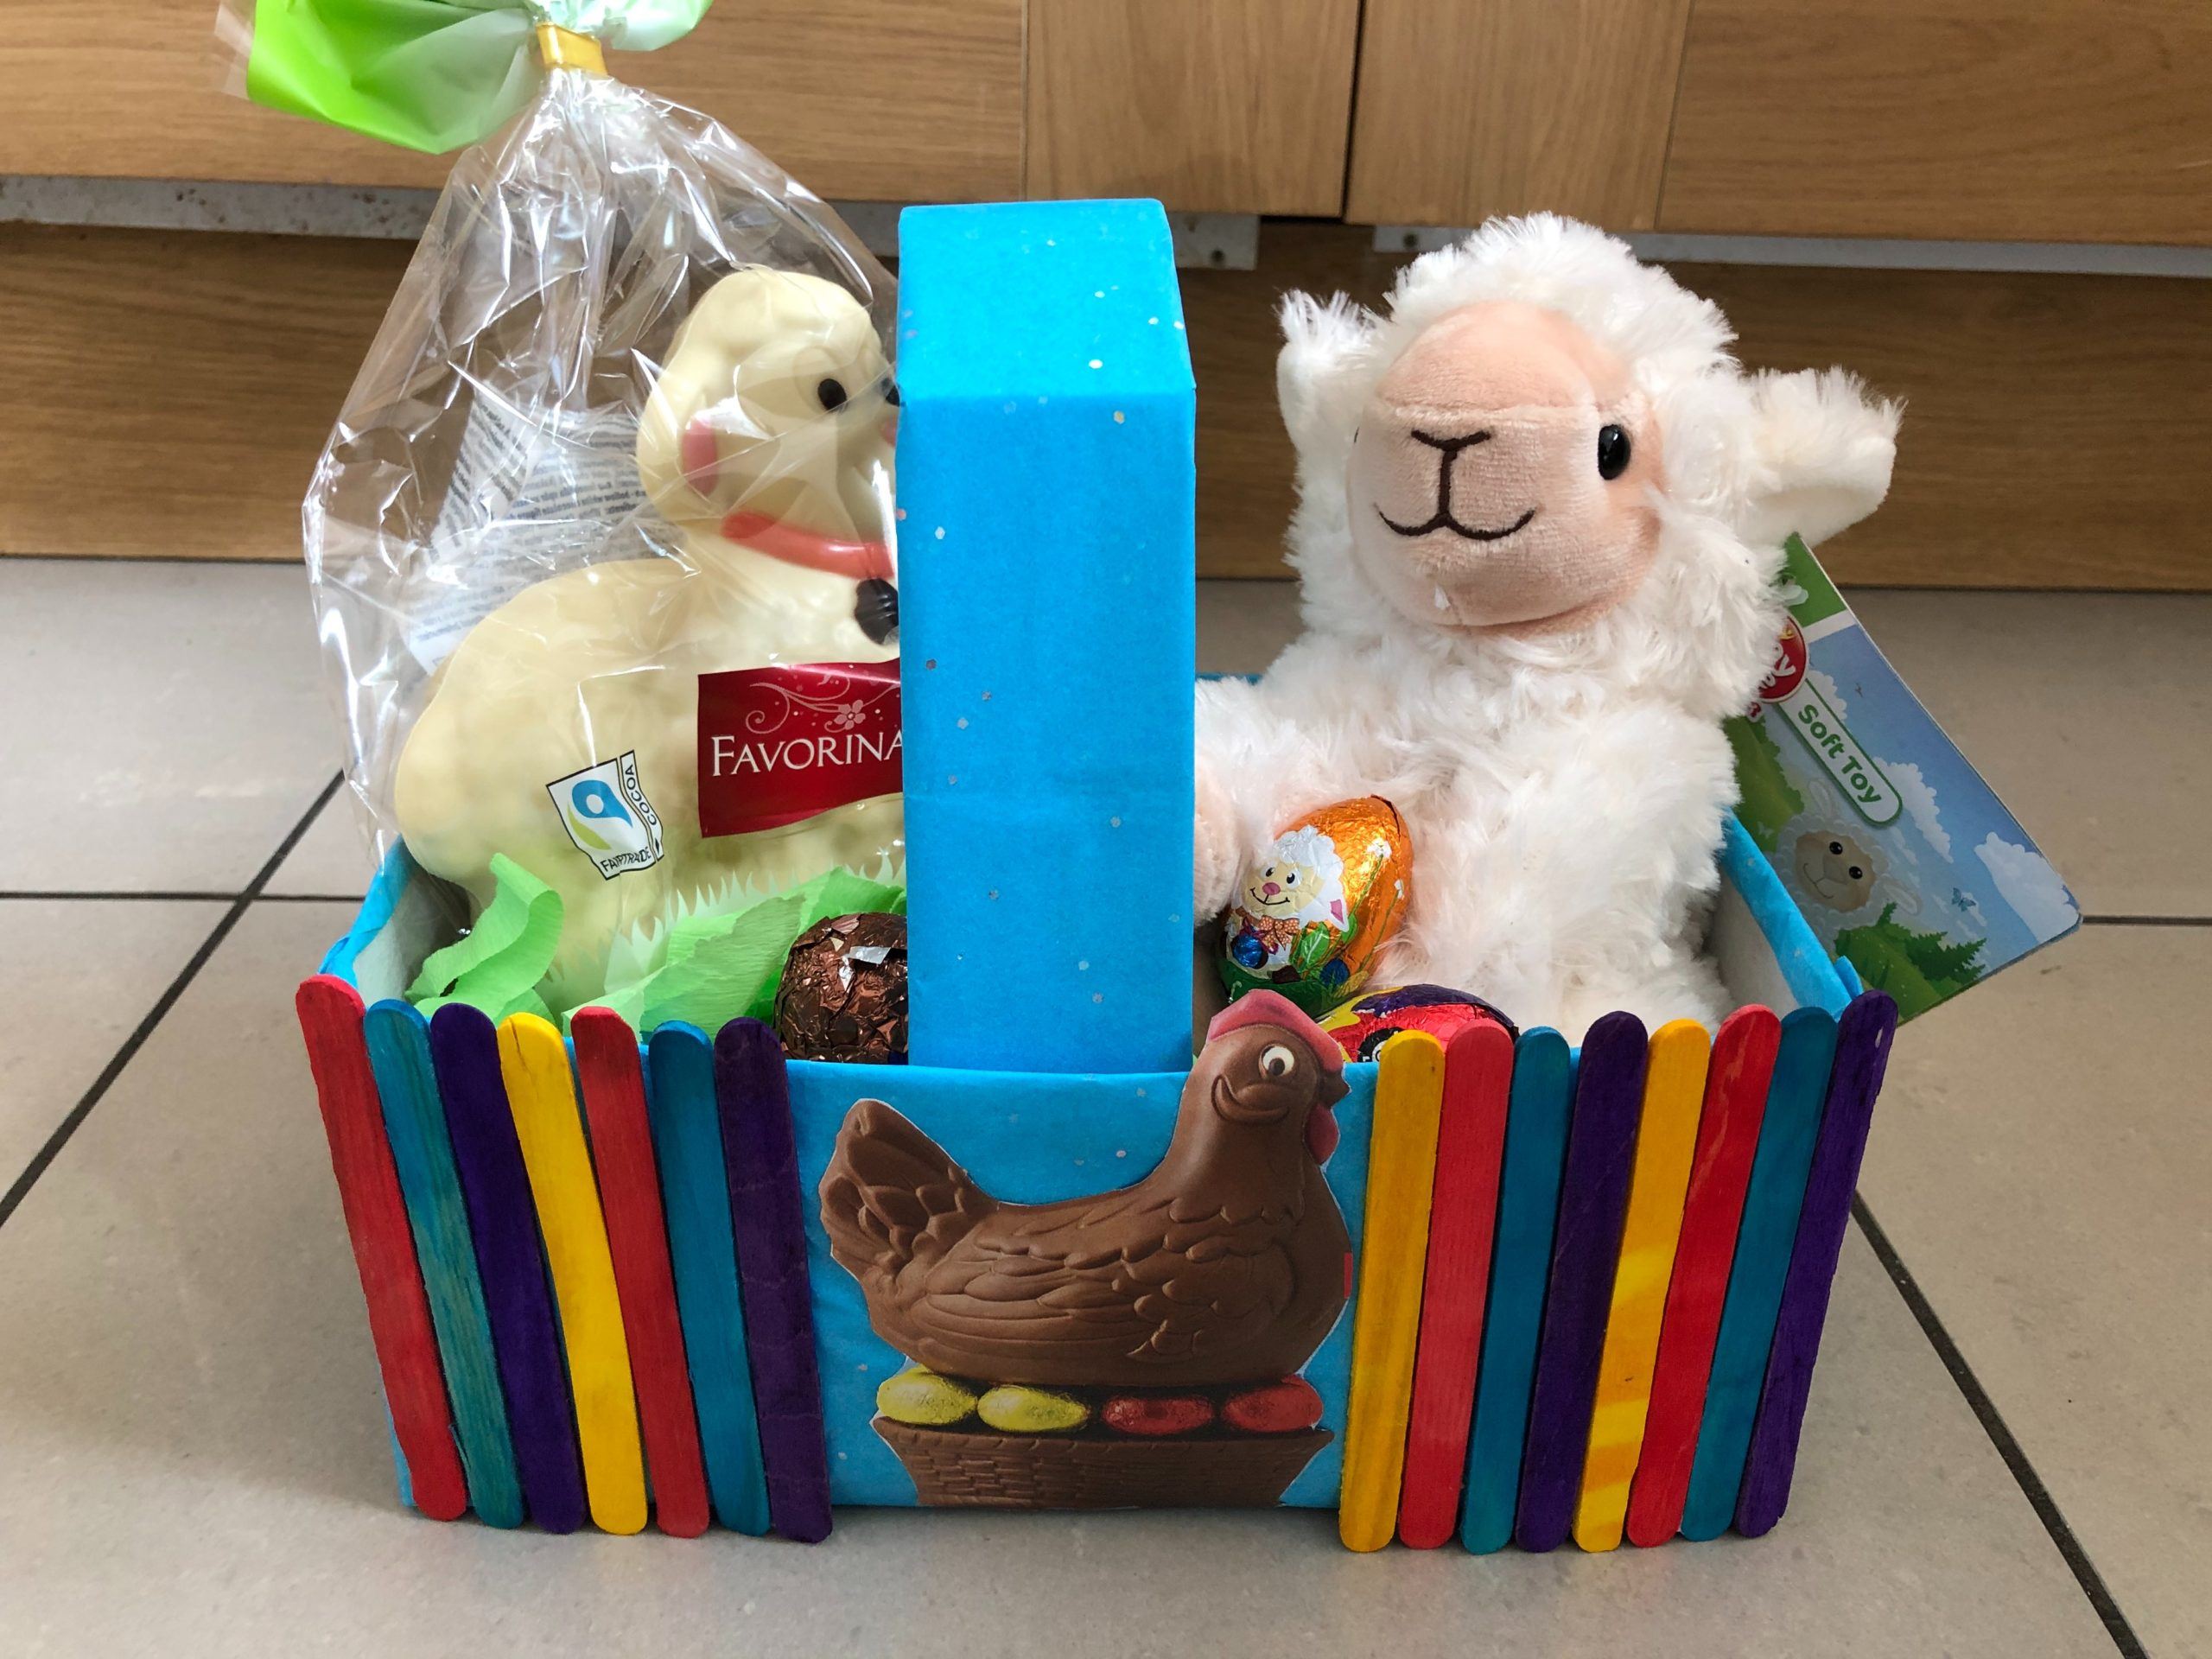 Multicoloured Easter basket made out of lollysticks. Inside the basket is a lamb and a duck